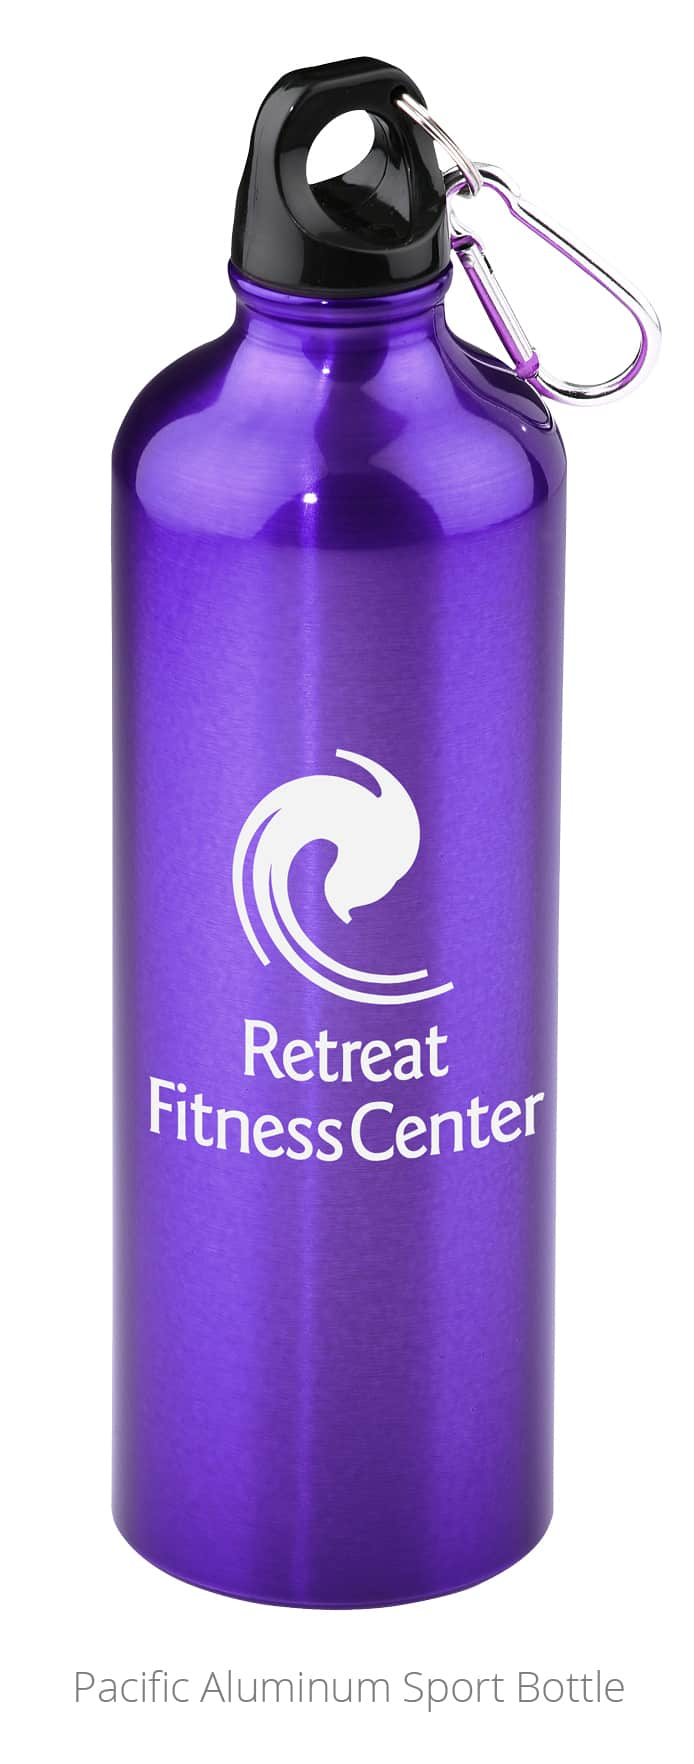 The Pacific Aluminum Sport Bottle is a thirst-quenching university promotional product.